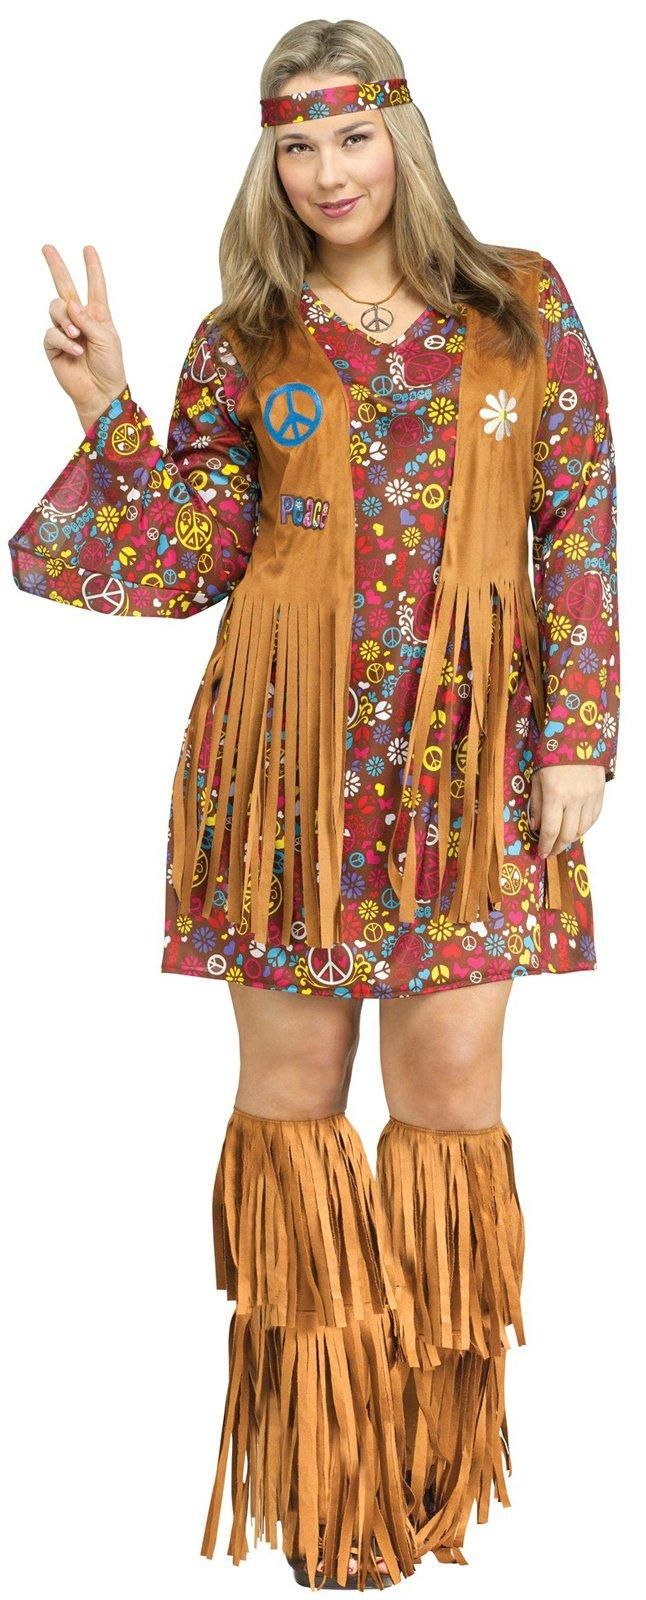 8b3b9e9dc9a Plus Size Peace and Love Hippie Costume For Women from CostumeExpress.com